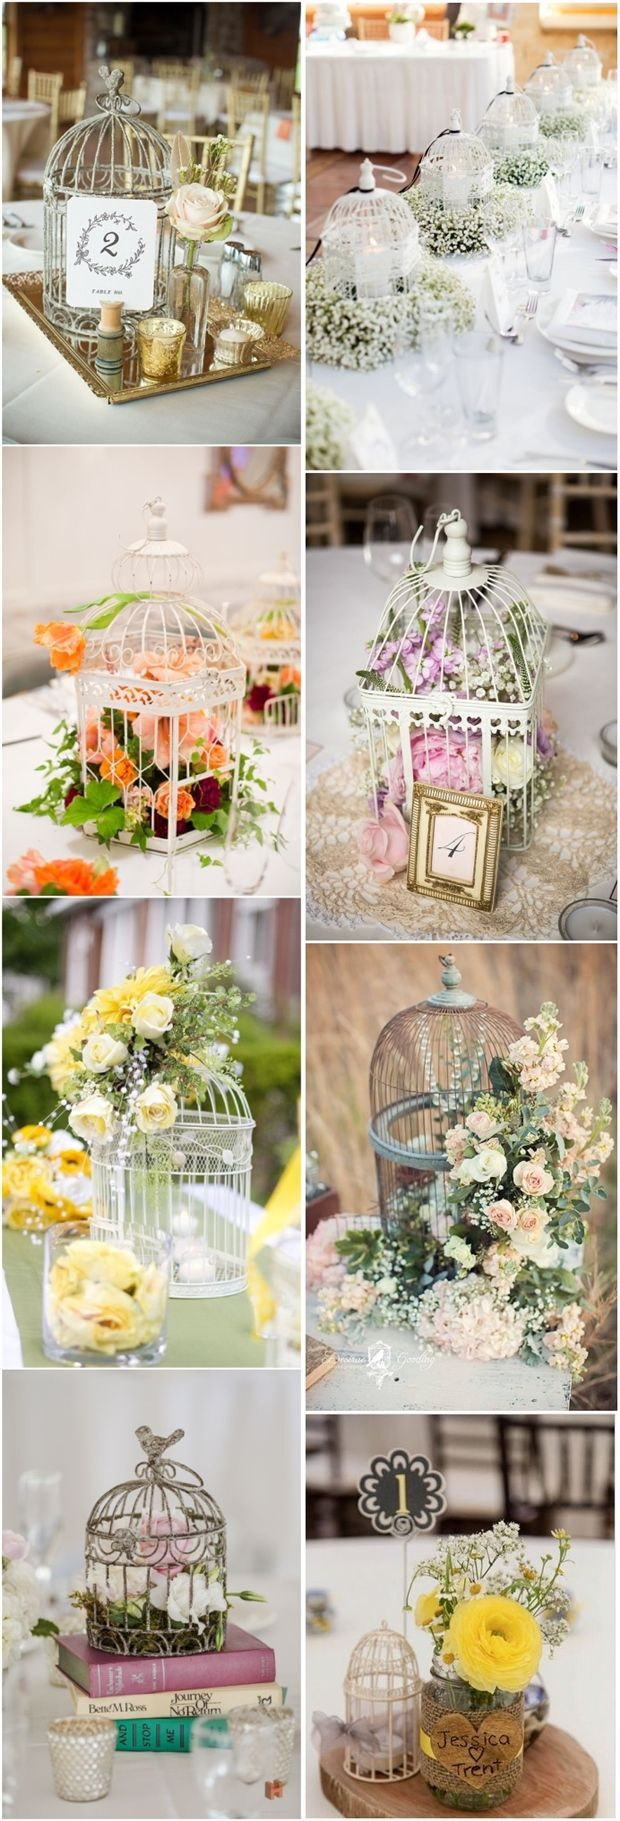 25 Truly Amazing Birdcage Wedding Centerpieces (with Tutrial) | http://www.deerpearlflowers.com/25-truly-amazing-birdcage-wedding-centerpieces/